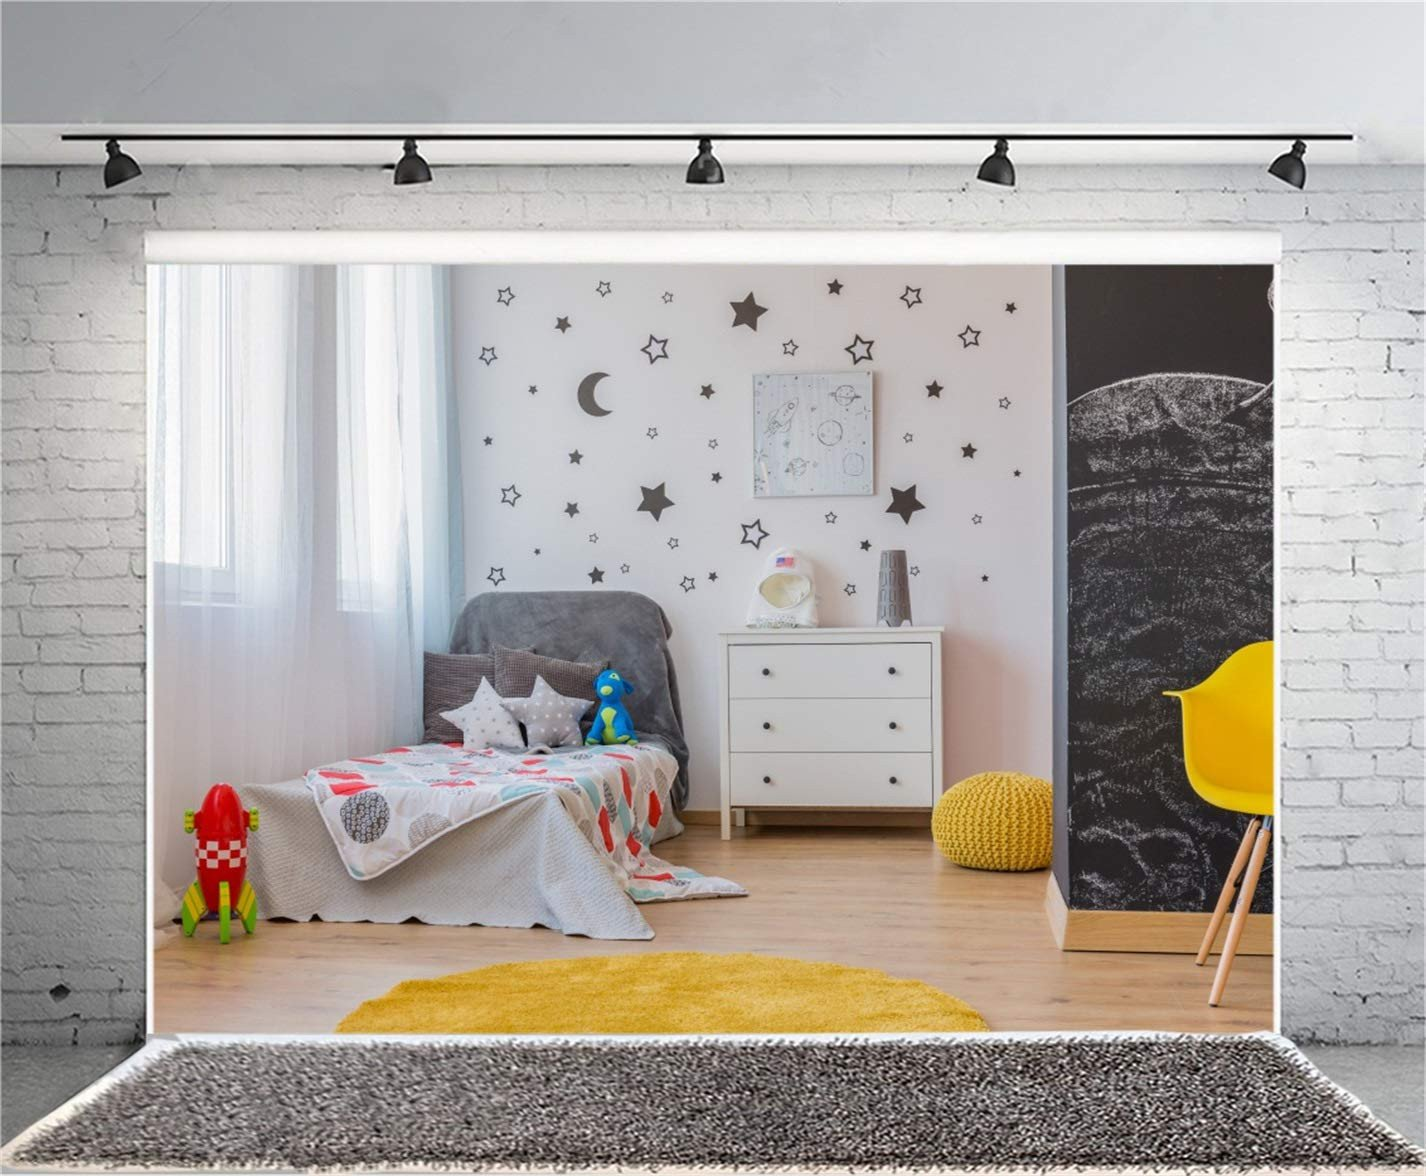 Grey Curtains for Bedroom Luxury Leyiyi 10x8ft Children S Room Interior Graphy Background Window Rocket Star Moon Pillow Carpet Kids Birthday Backdrop Curtain toy Dragon1st B Day